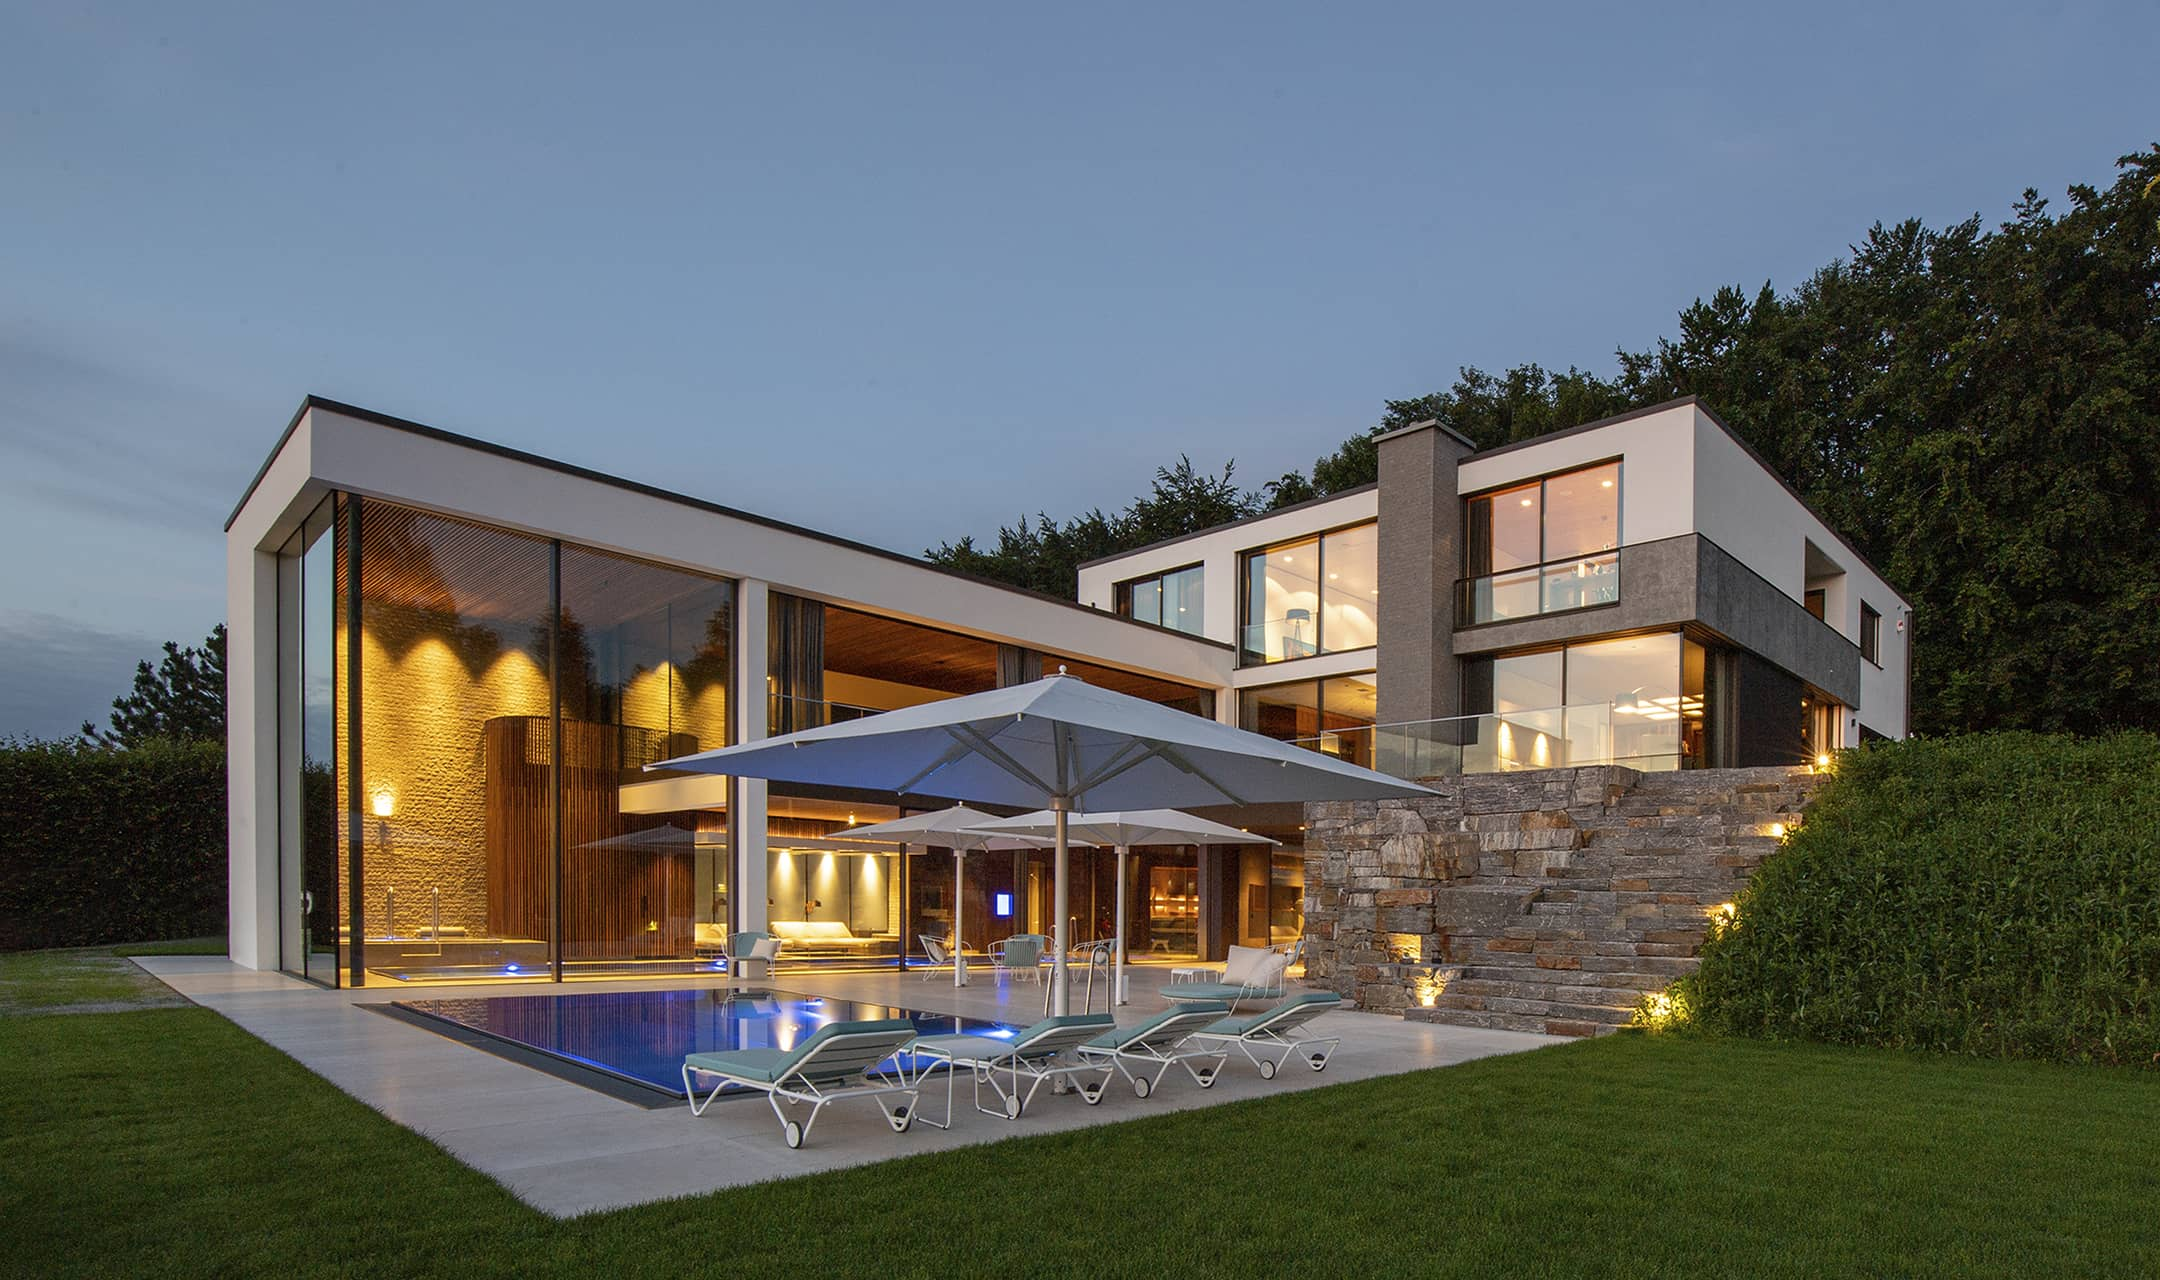 Residential House in Germany